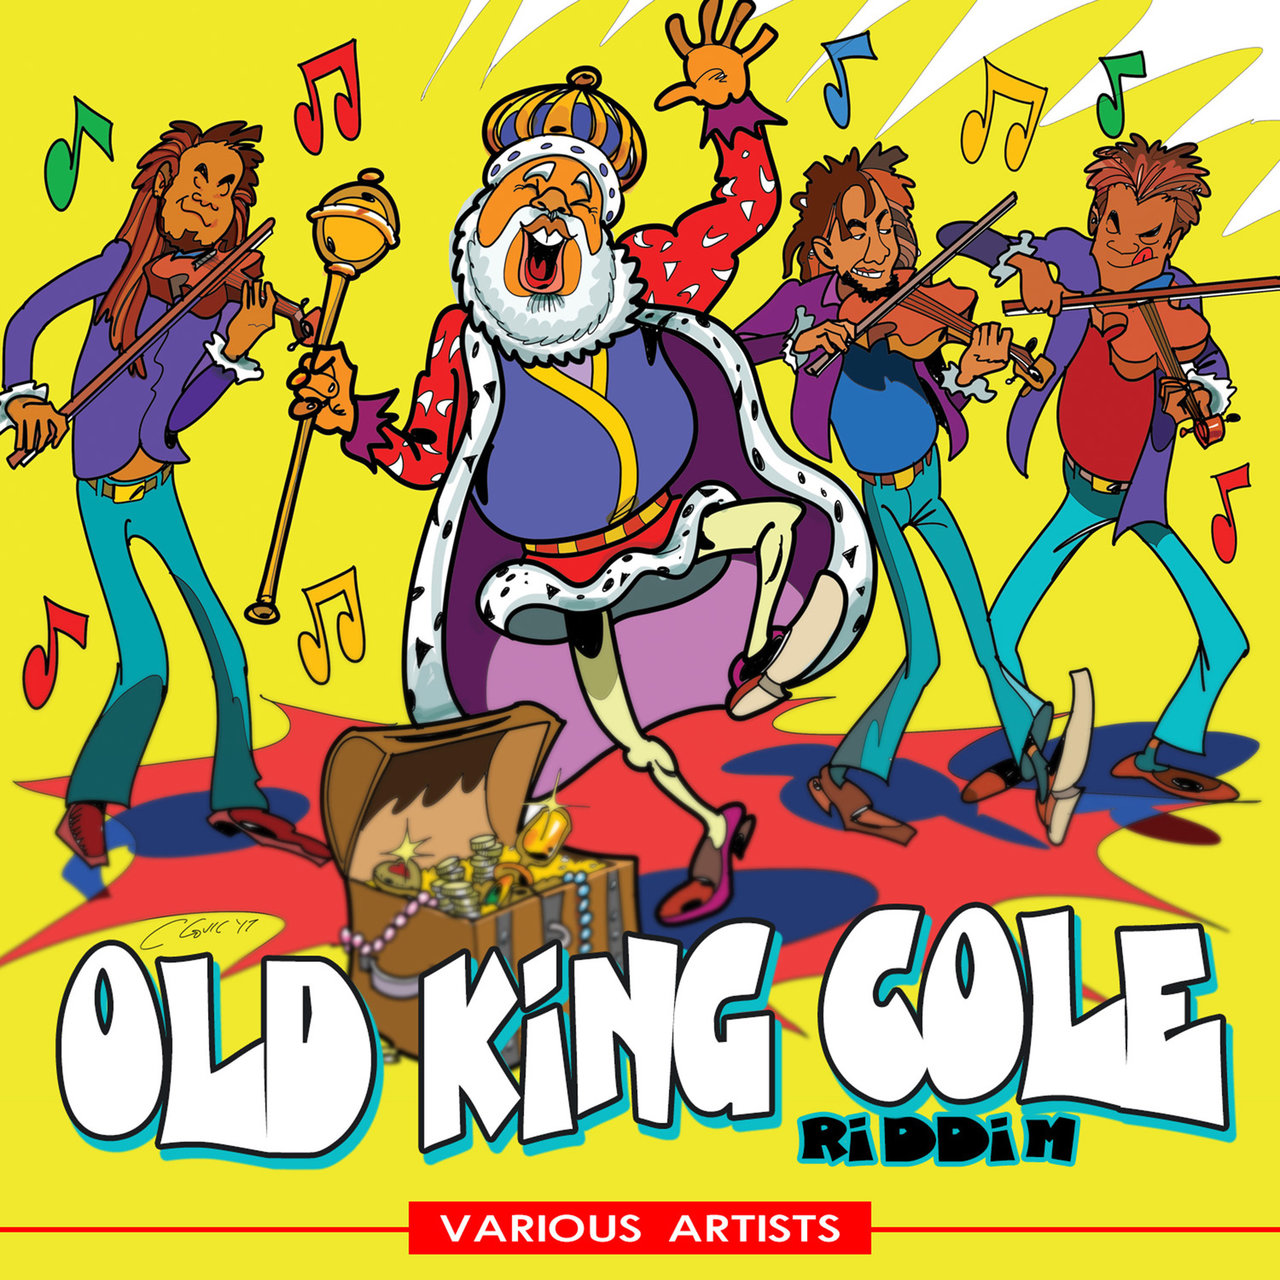 Old King Cole Riddim